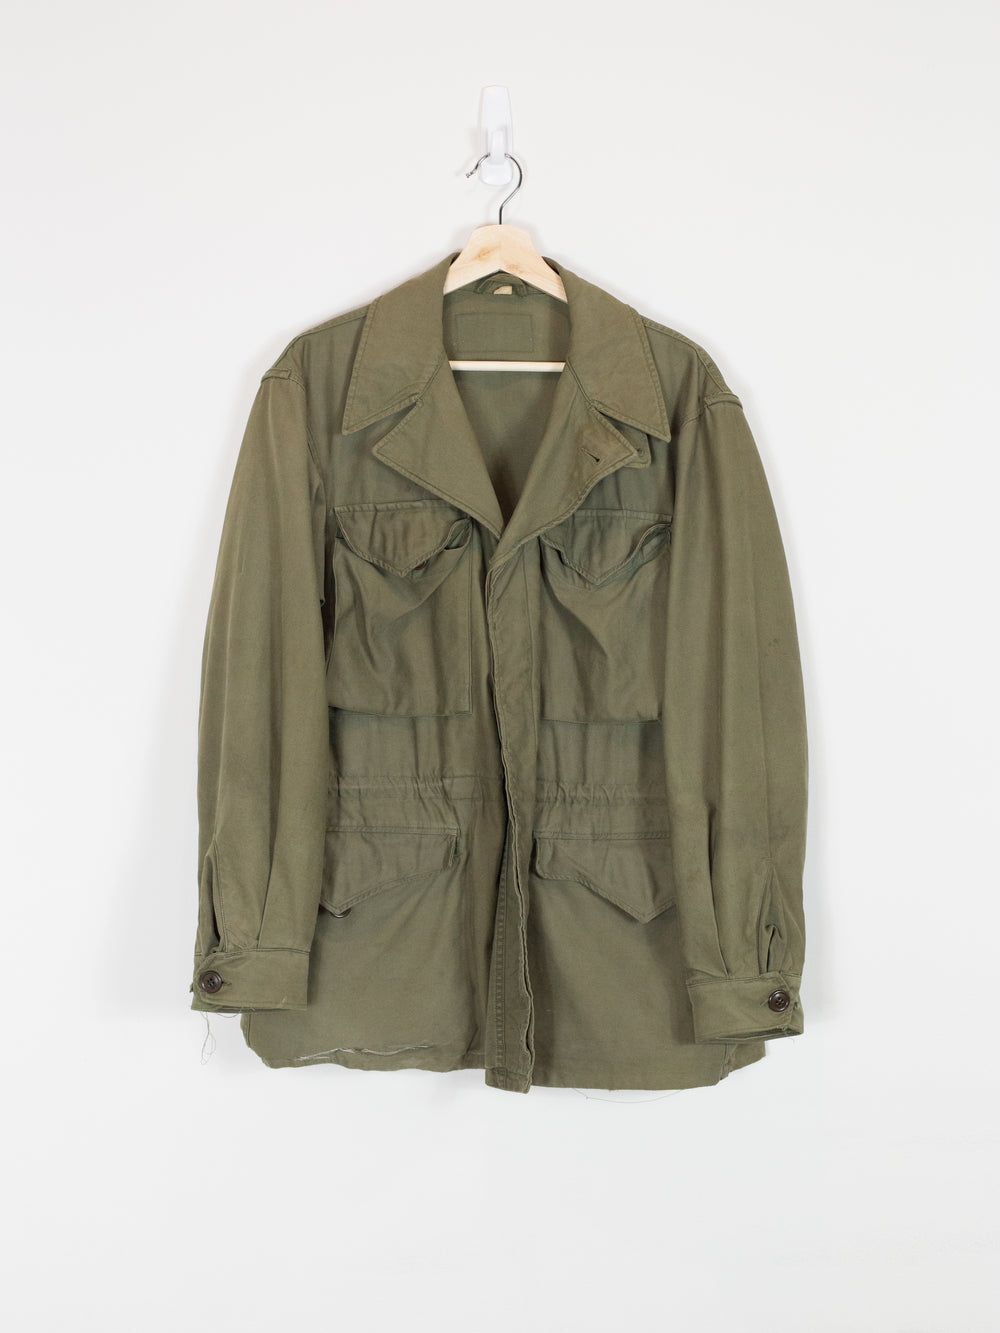 Vintage Original 1940s US Military M43 Jacket